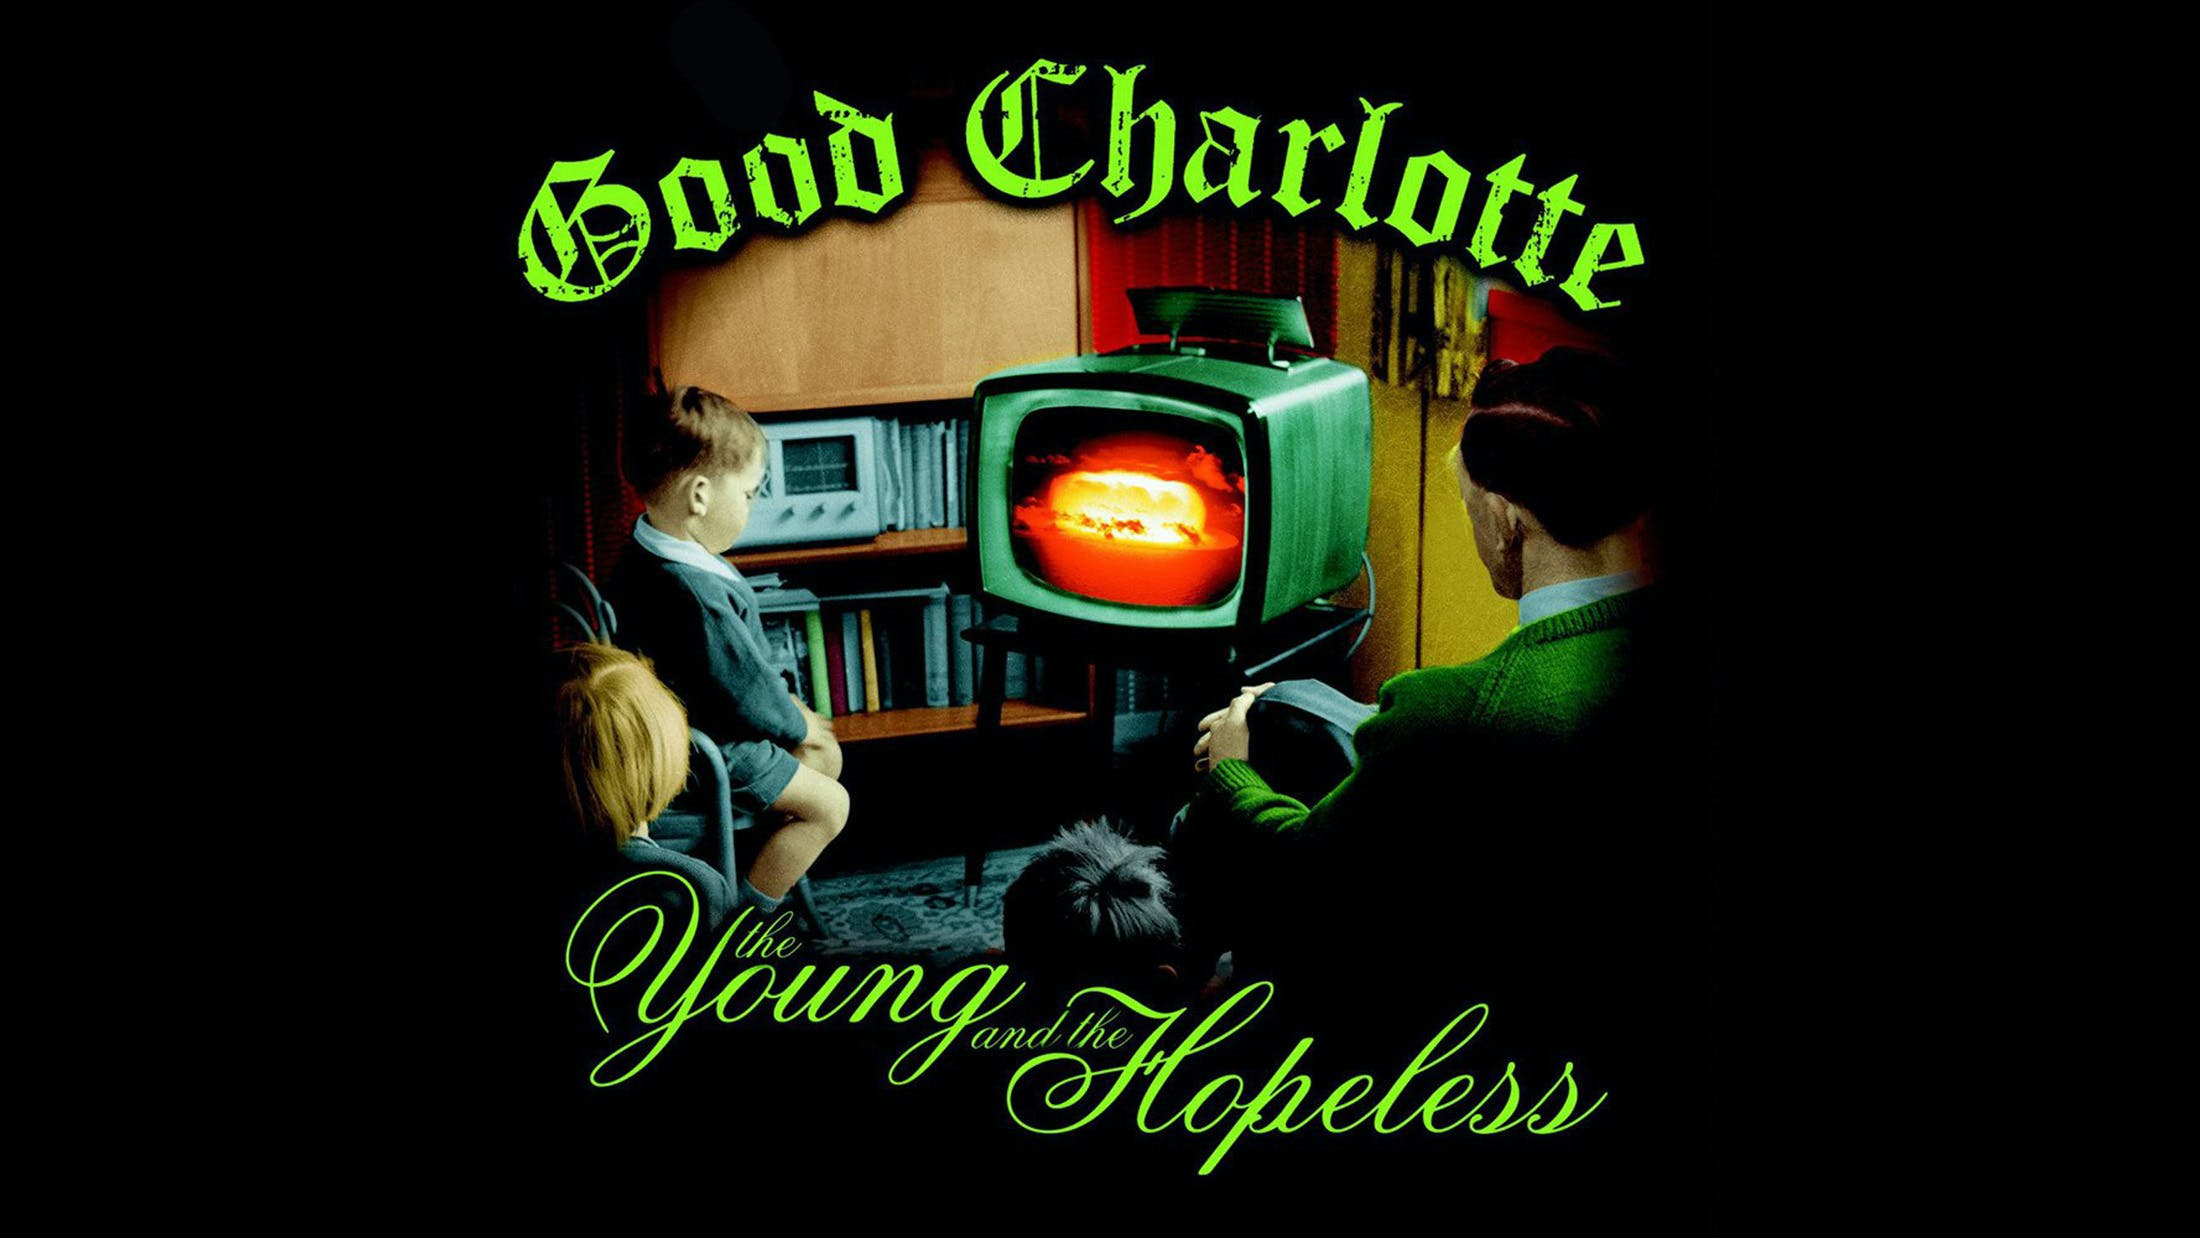 12. Good Charlotte - The Young And Hopeless (2002)